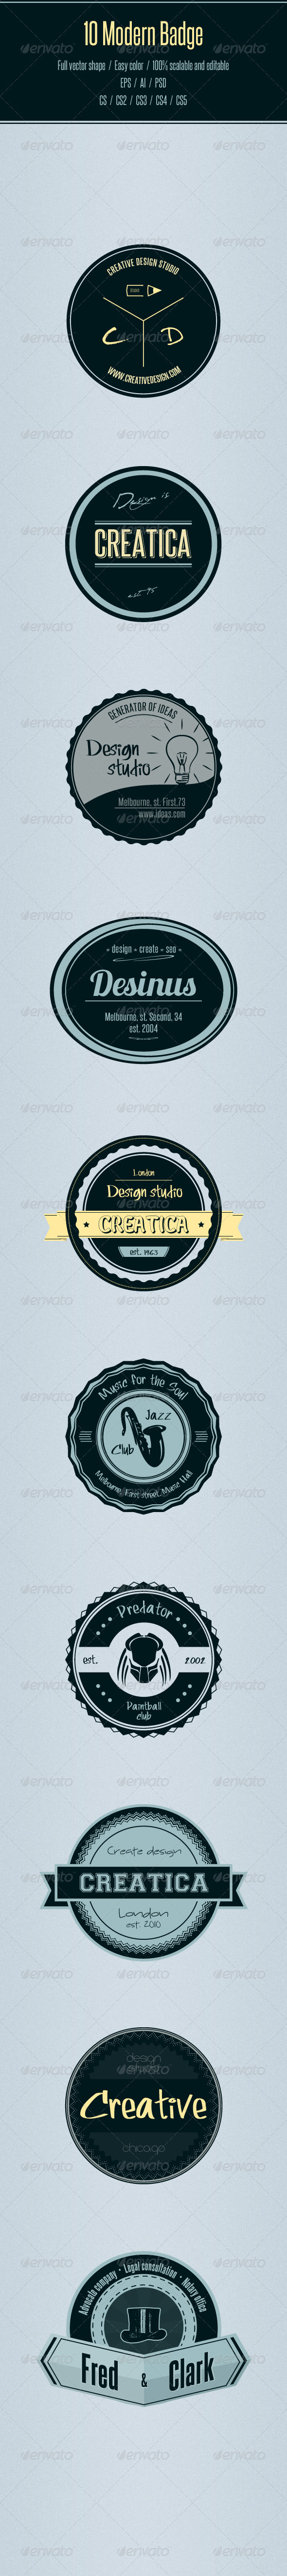 10 Modern Badge - Badges & Stickers Web Elements